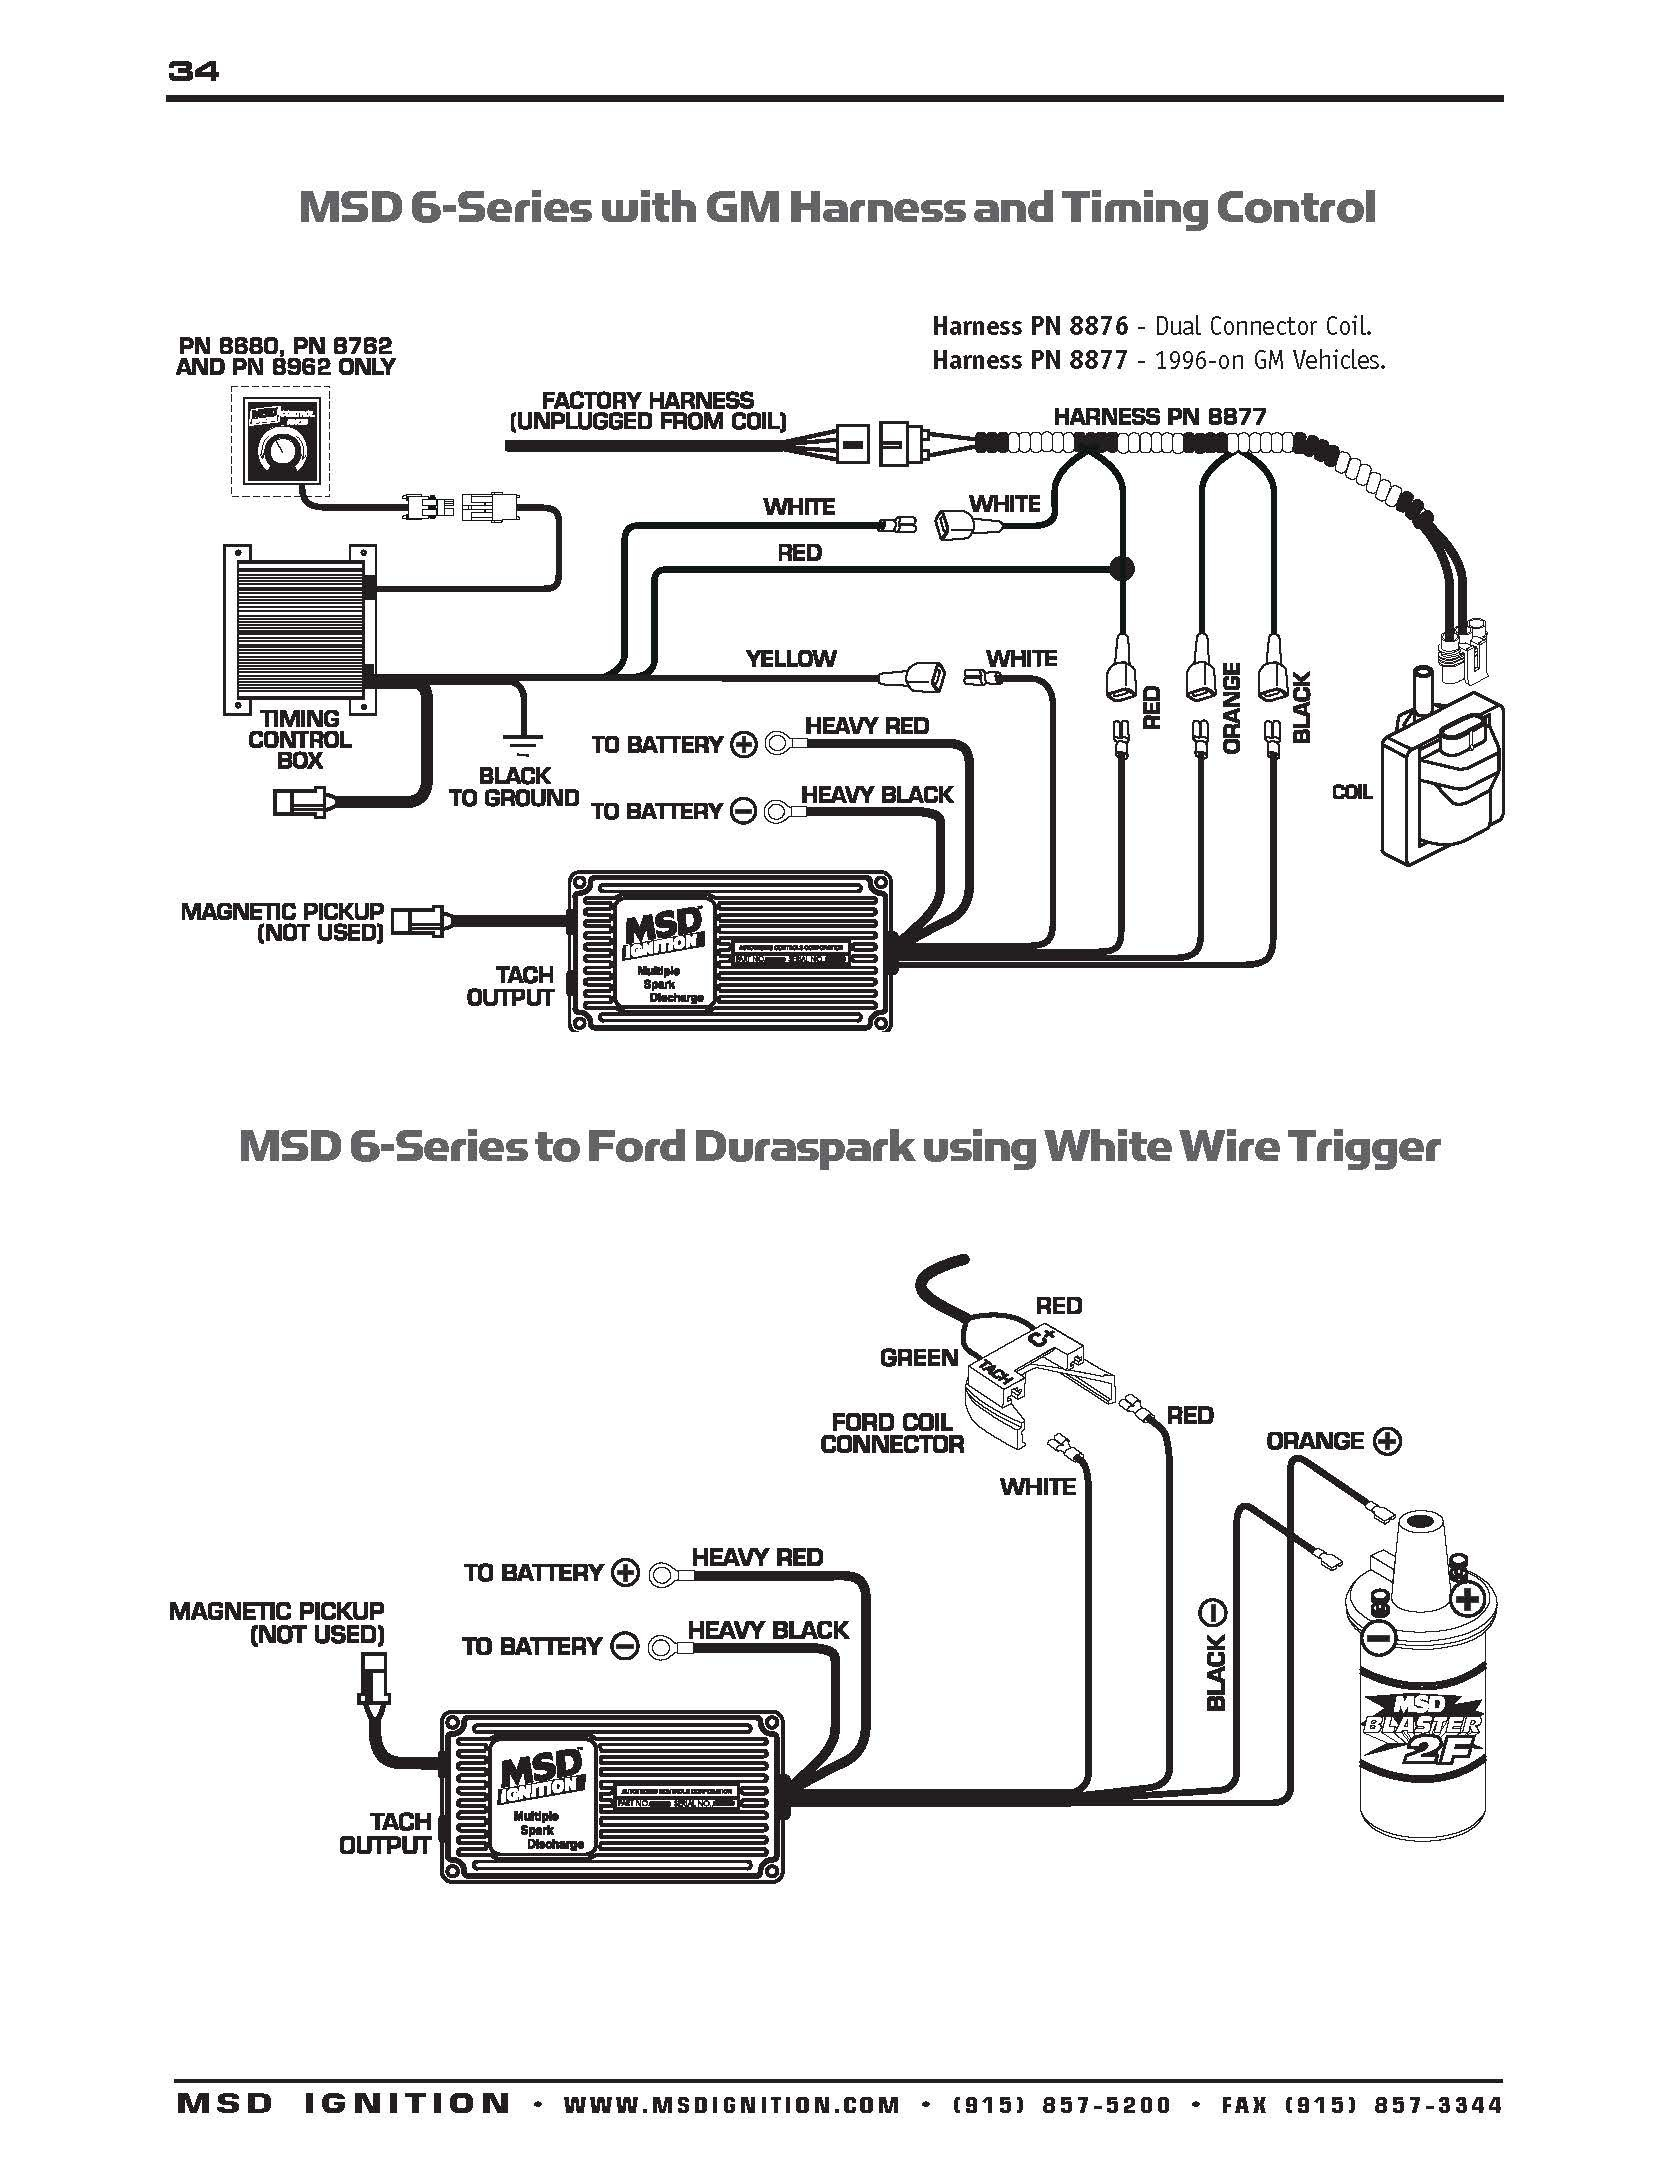 Ignition Coil Wiring Diagram : ignition, wiring, diagram, DIAGRAM], Chevy, Ignition, Diagram, Version, Quality, CURCUITDIAGRAMS.VERITAPERALDRO.IT